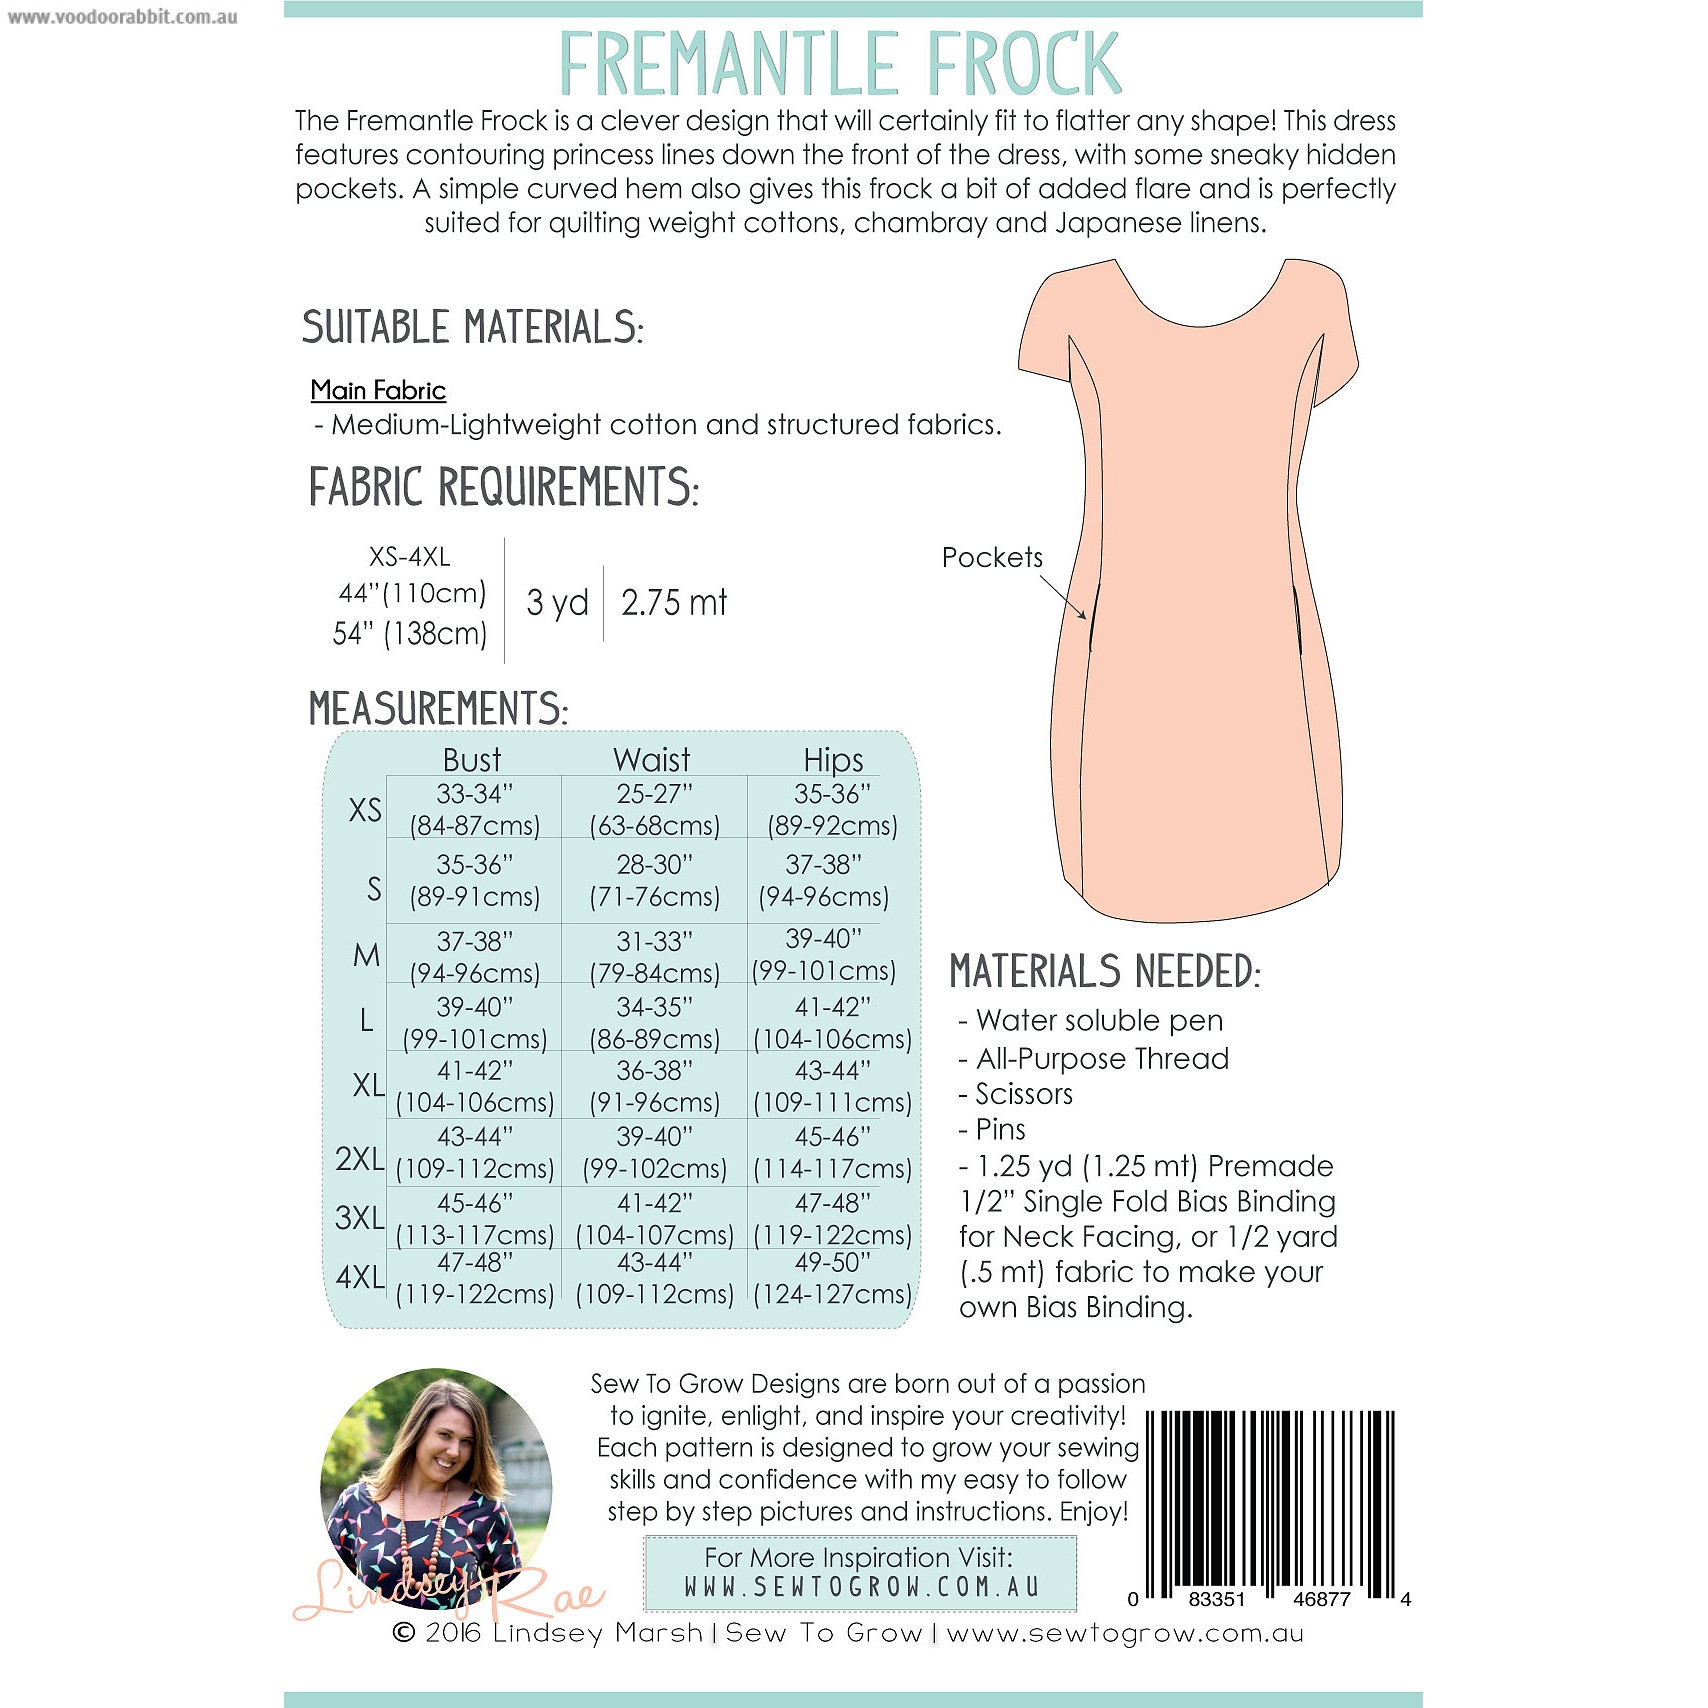 Fremantle Frock Dress Sewing Pattern by Sew To Grow